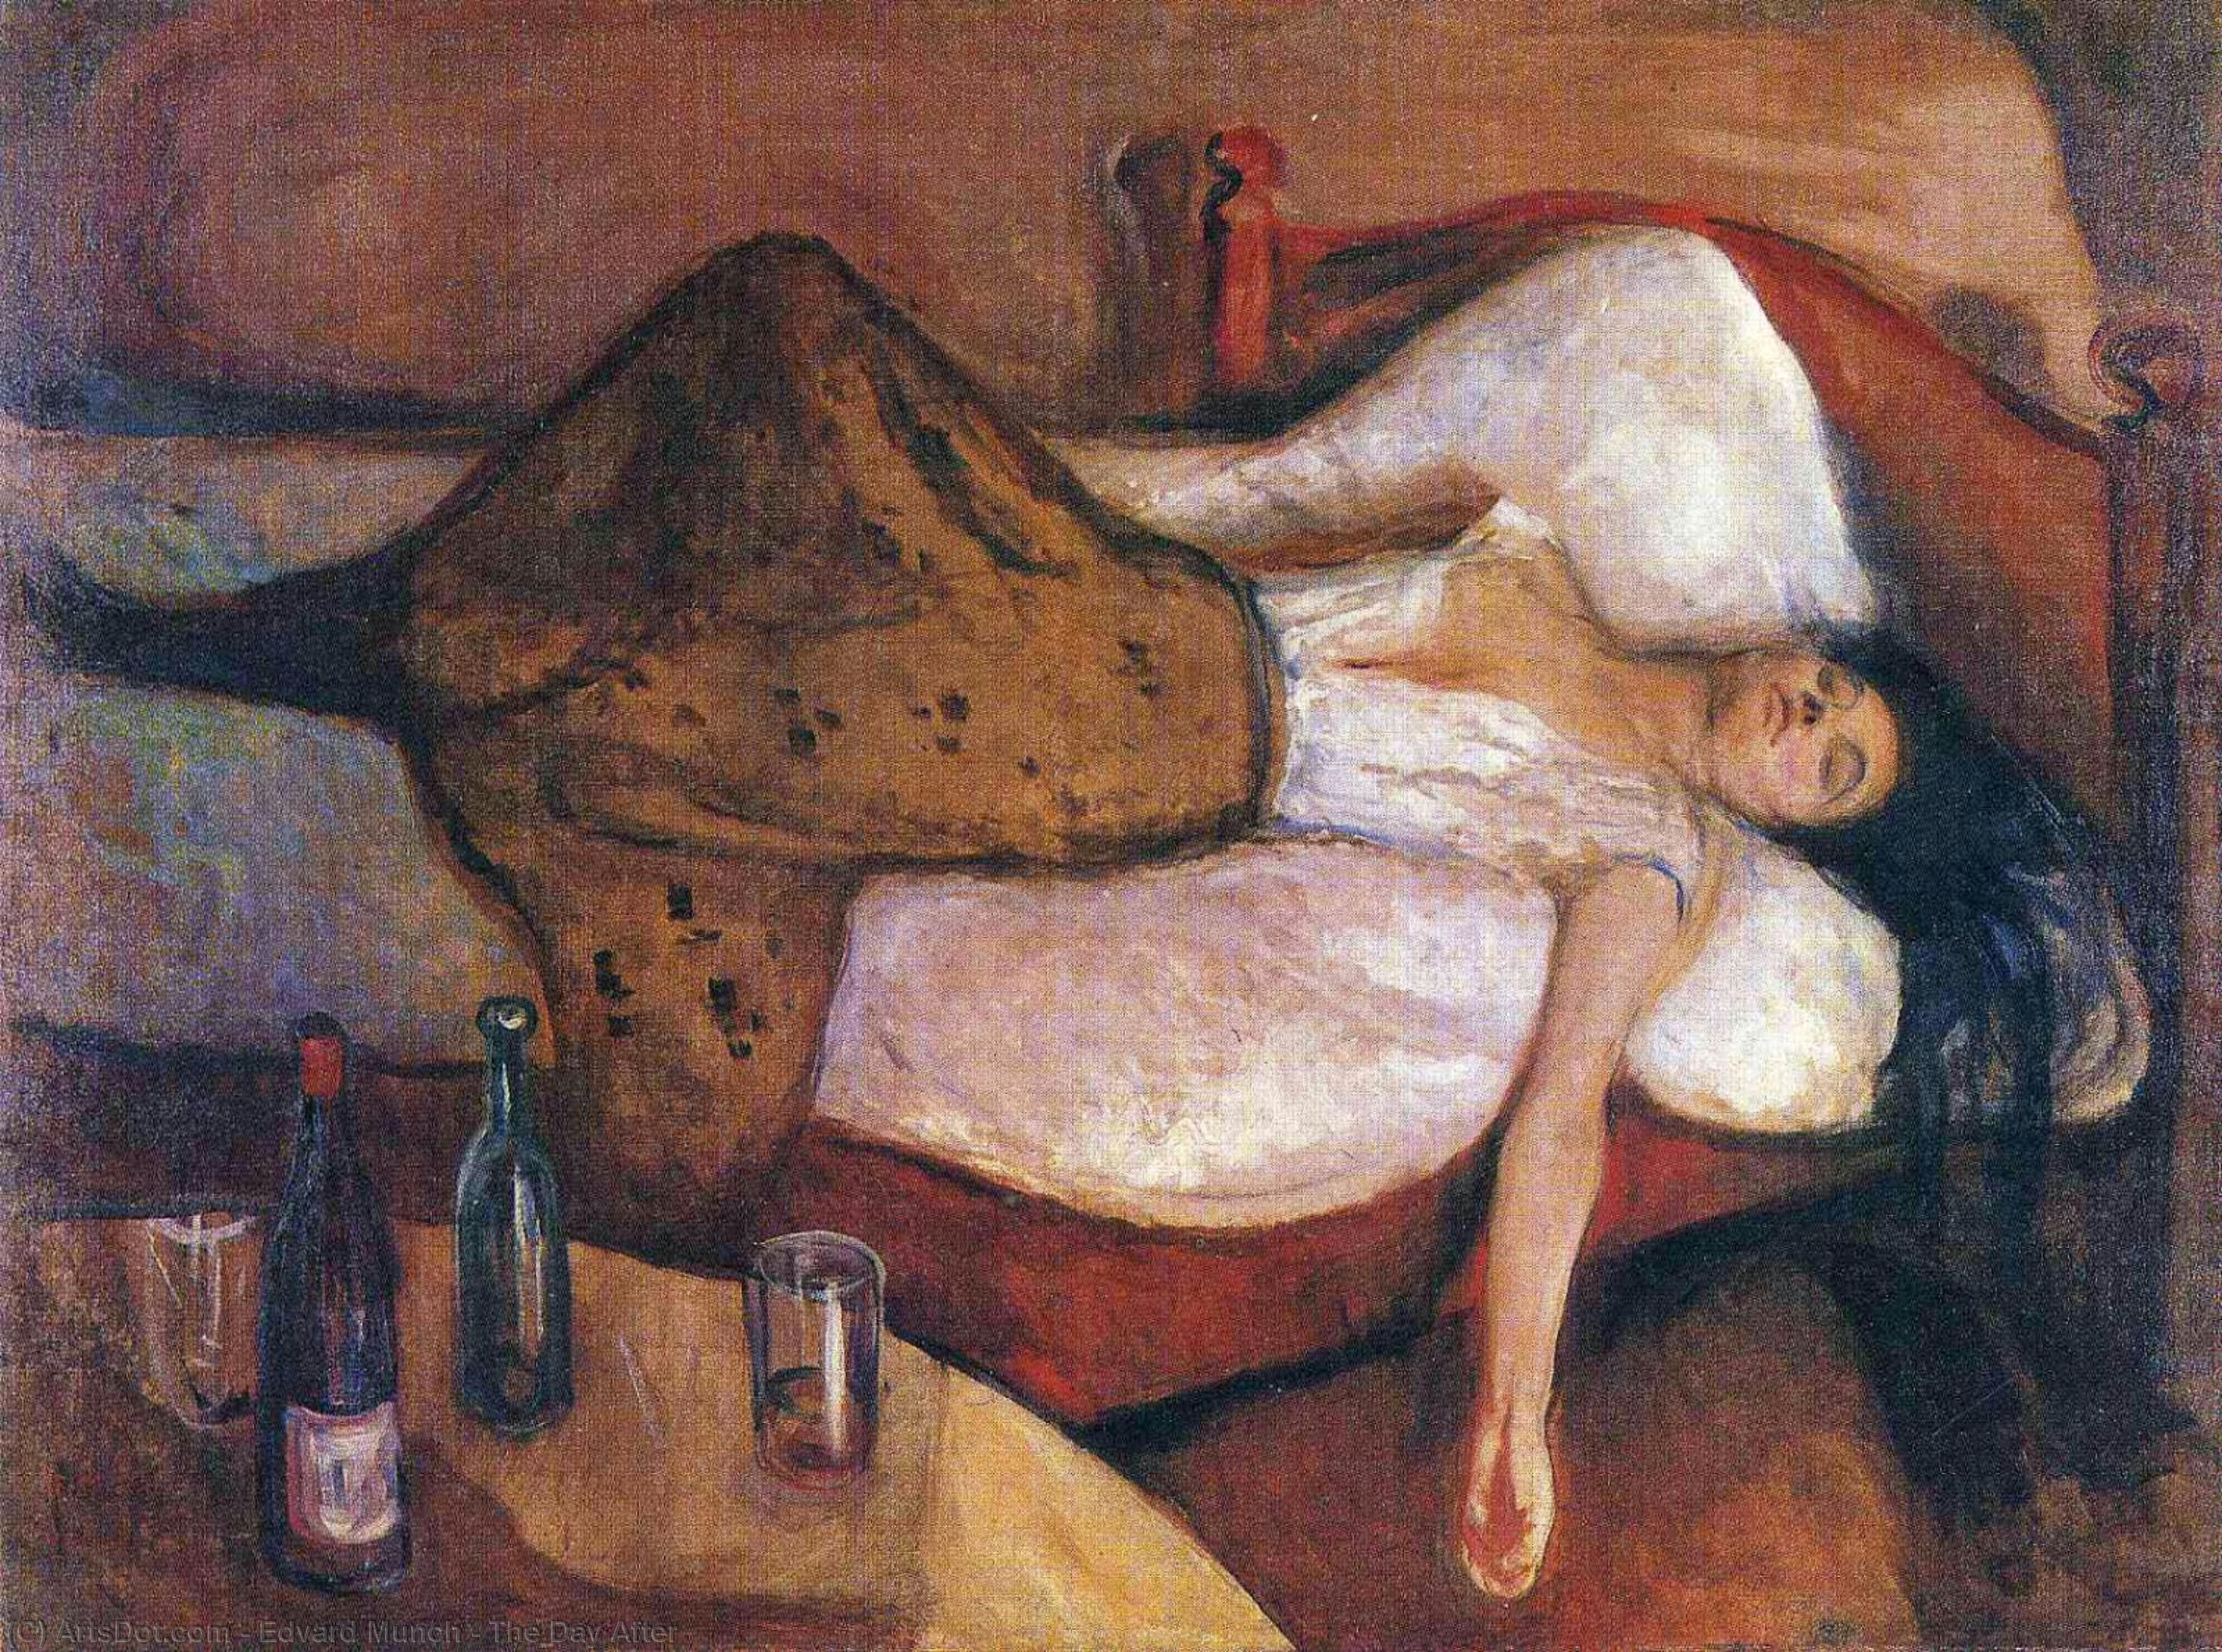 Wikioo.org - The Encyclopedia of Fine Arts - Painting, Artwork by Edvard Munch - The Day After